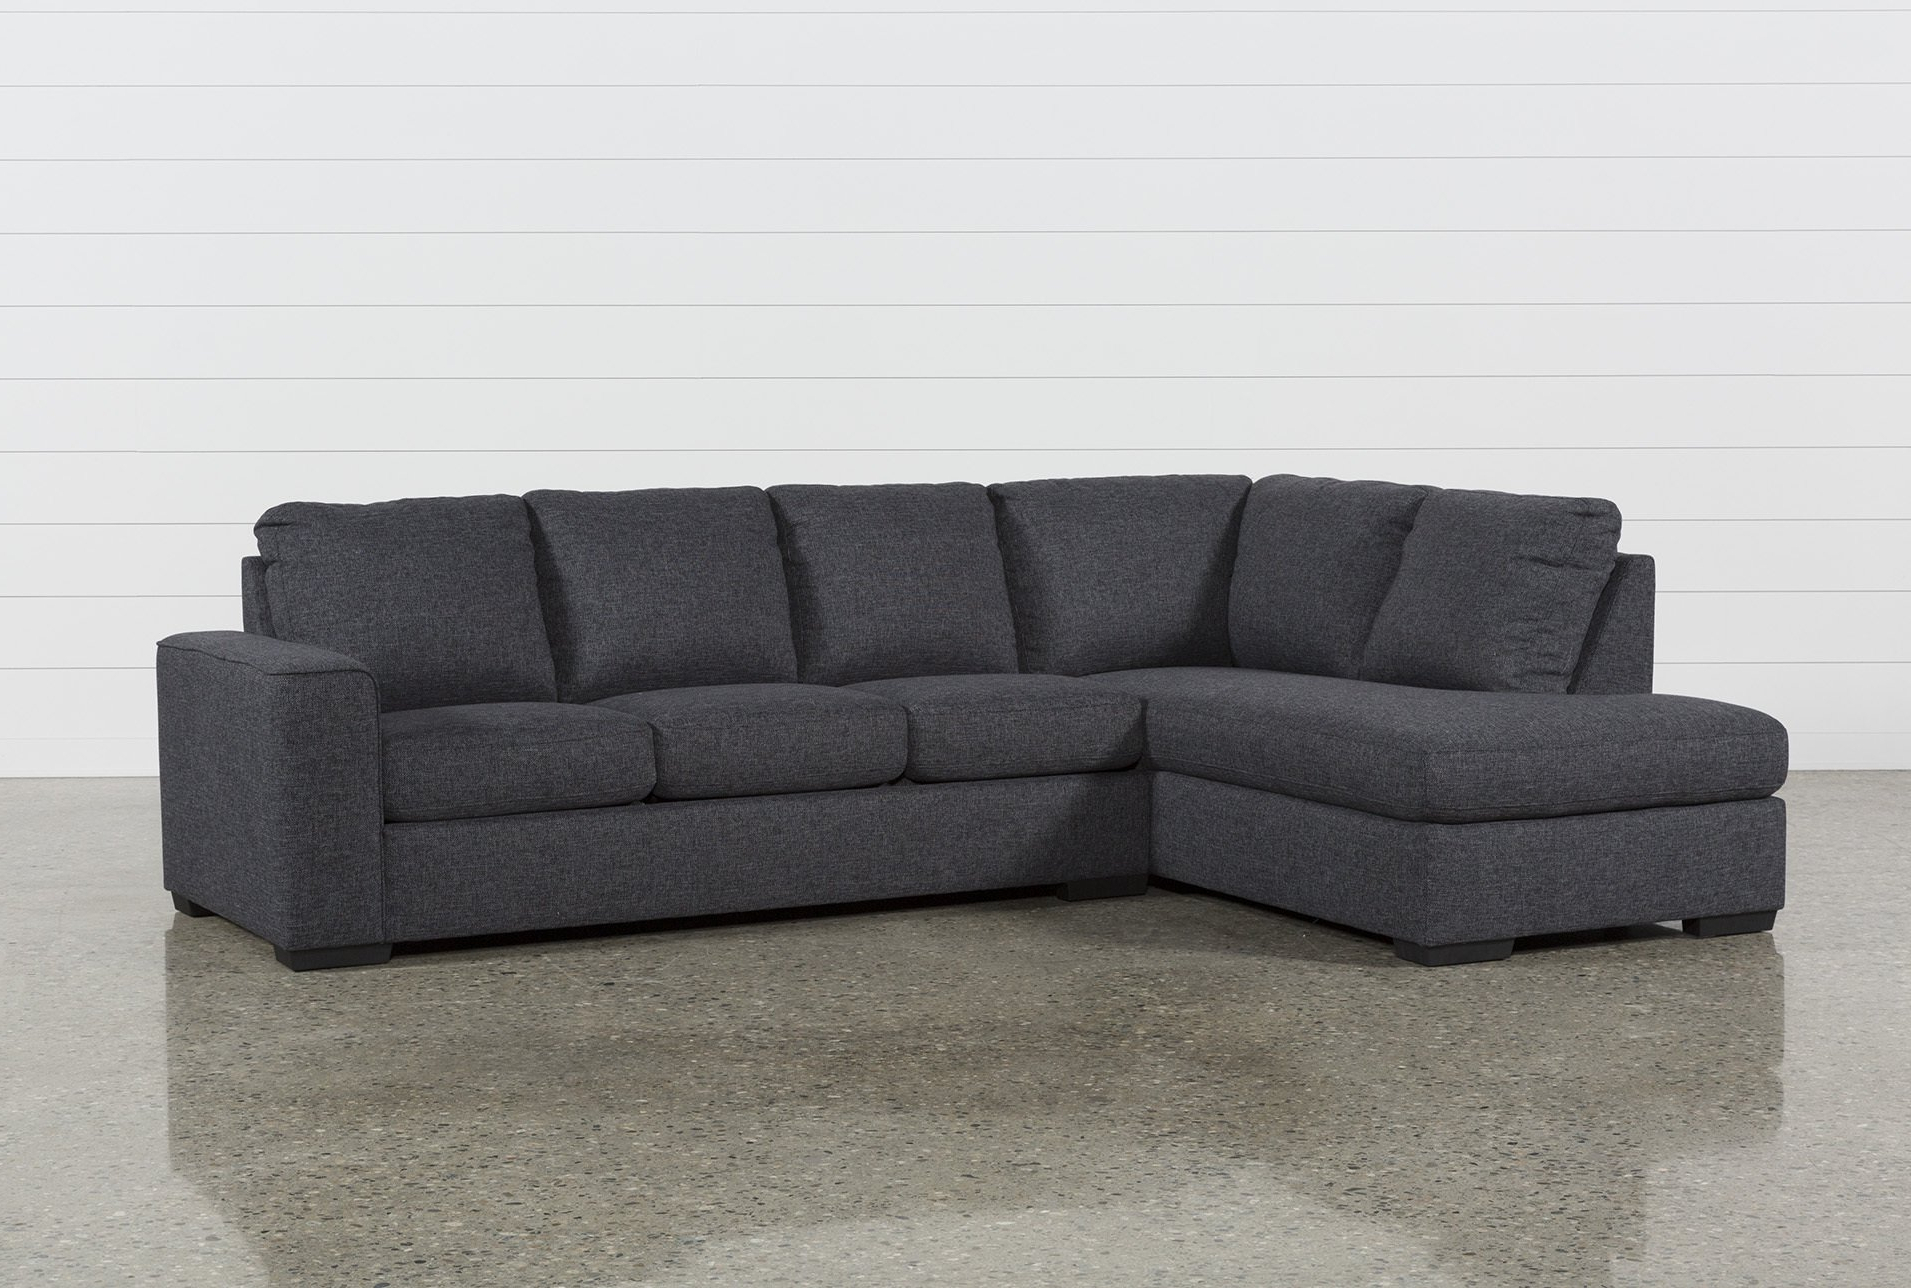 Dark Grey And Products Regarding Aspen 2 Piece Sleeper Sectionals With Raf Chaise (View 3 of 20)